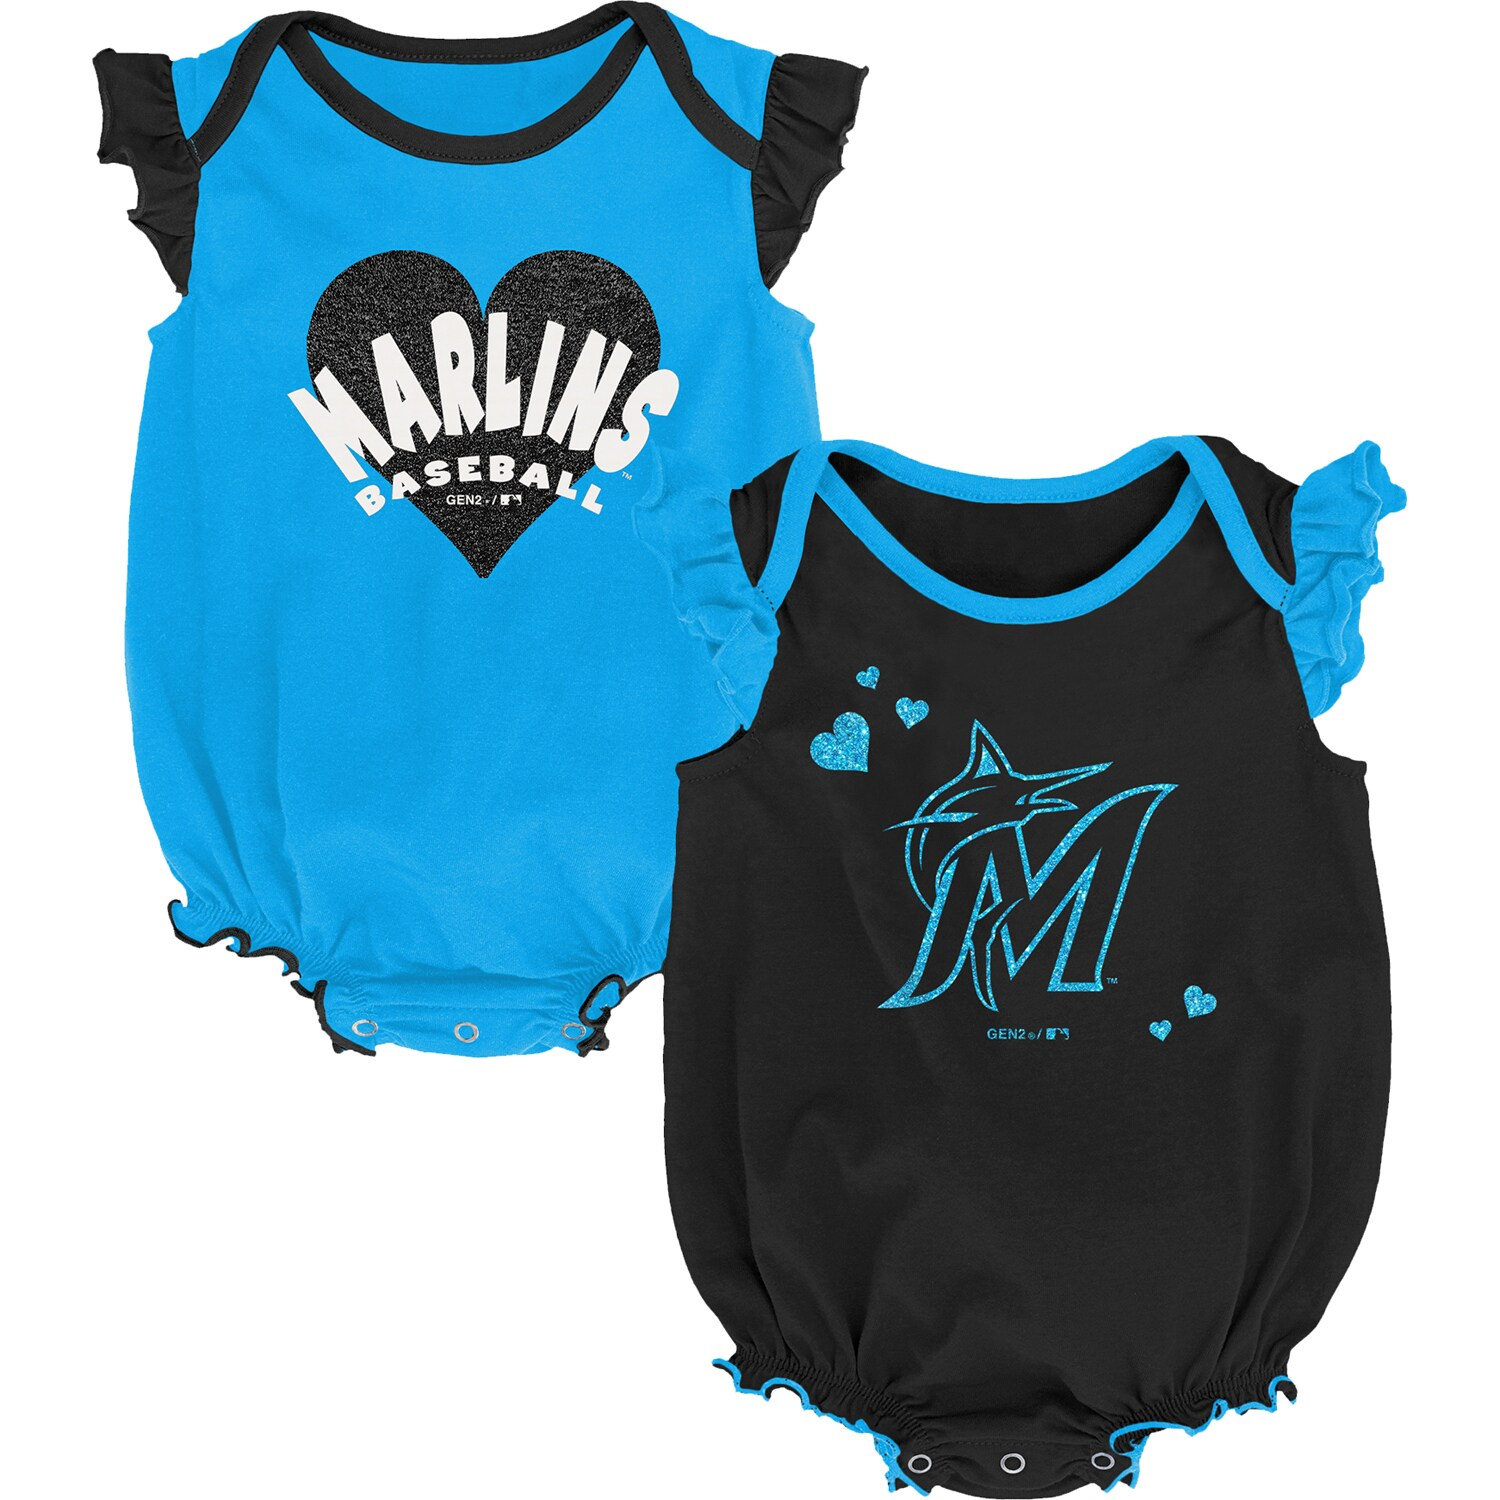 Miami Marlins Girls Newborn & Infant Double Trouble Two-Pack Bodysuit Set - Black/Blue